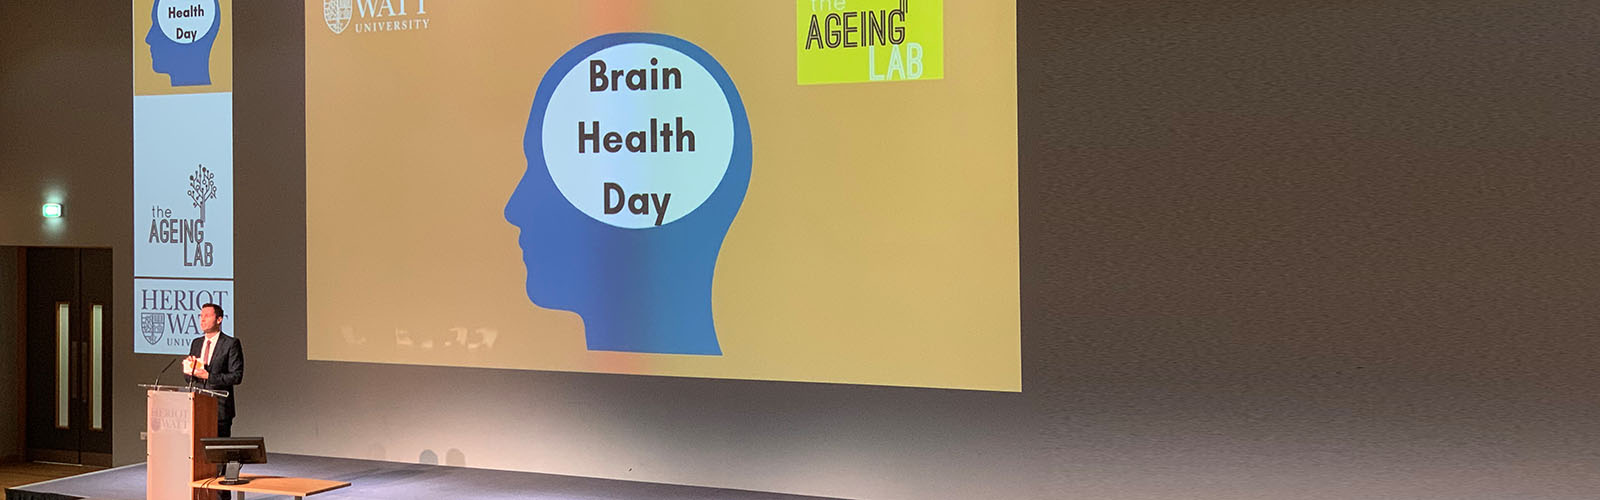 Professor Alan Gow from Heriot-Watt University stands in front of a screen with the headline 'Brain Health Day' showing